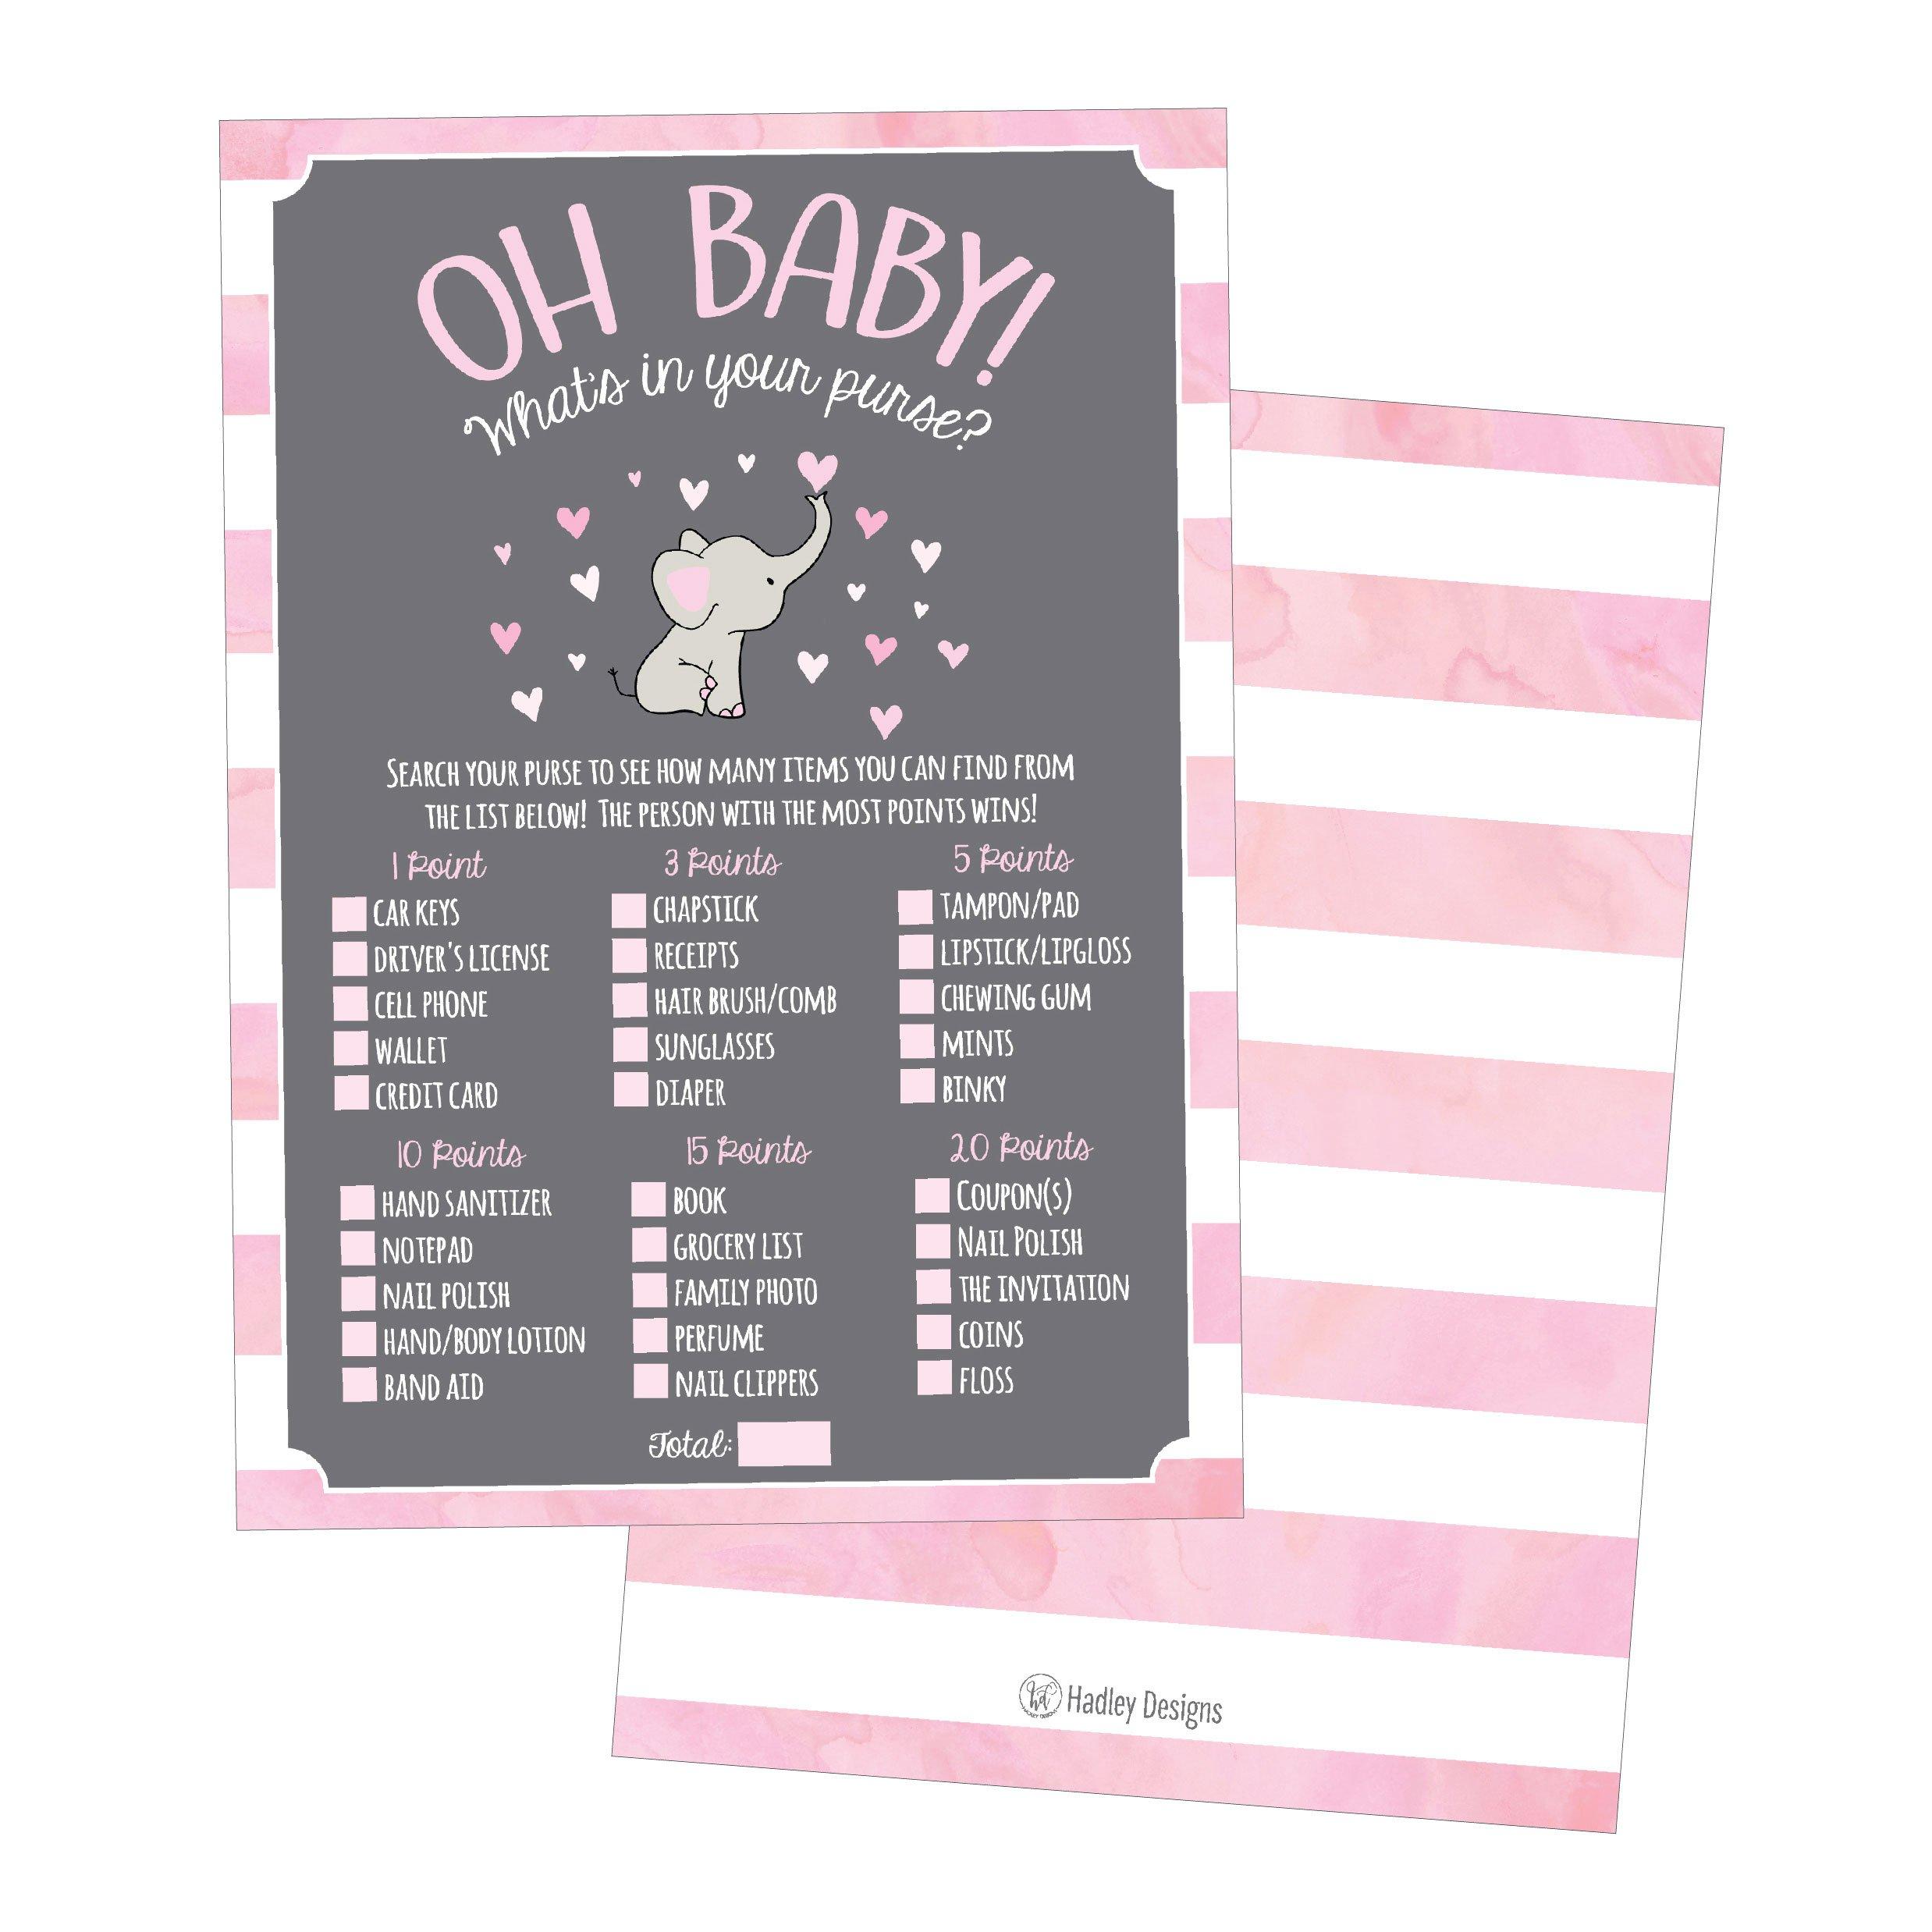 25 Pink Elephant What's In Your Purse Baby Shower Game, Funny Idea Coed Couples Game For Baby Party, Fun Woodland Themed Bundle Pack of Cards To Play at Boy or Girl Gender Decoration and Supplies